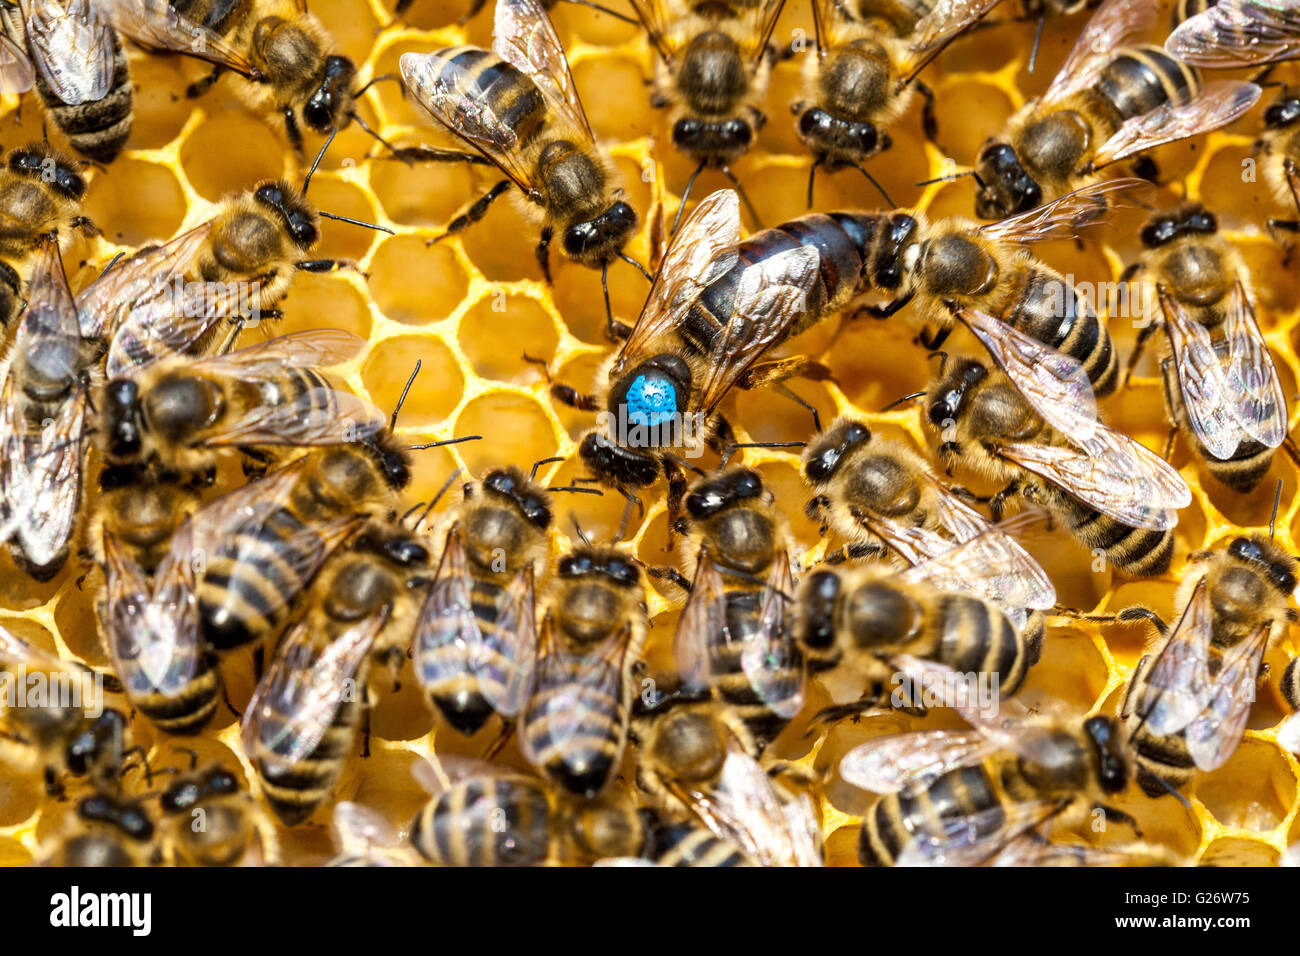 Bee queen, marked and surrounded by worker bees, beehive bees - Stock Image